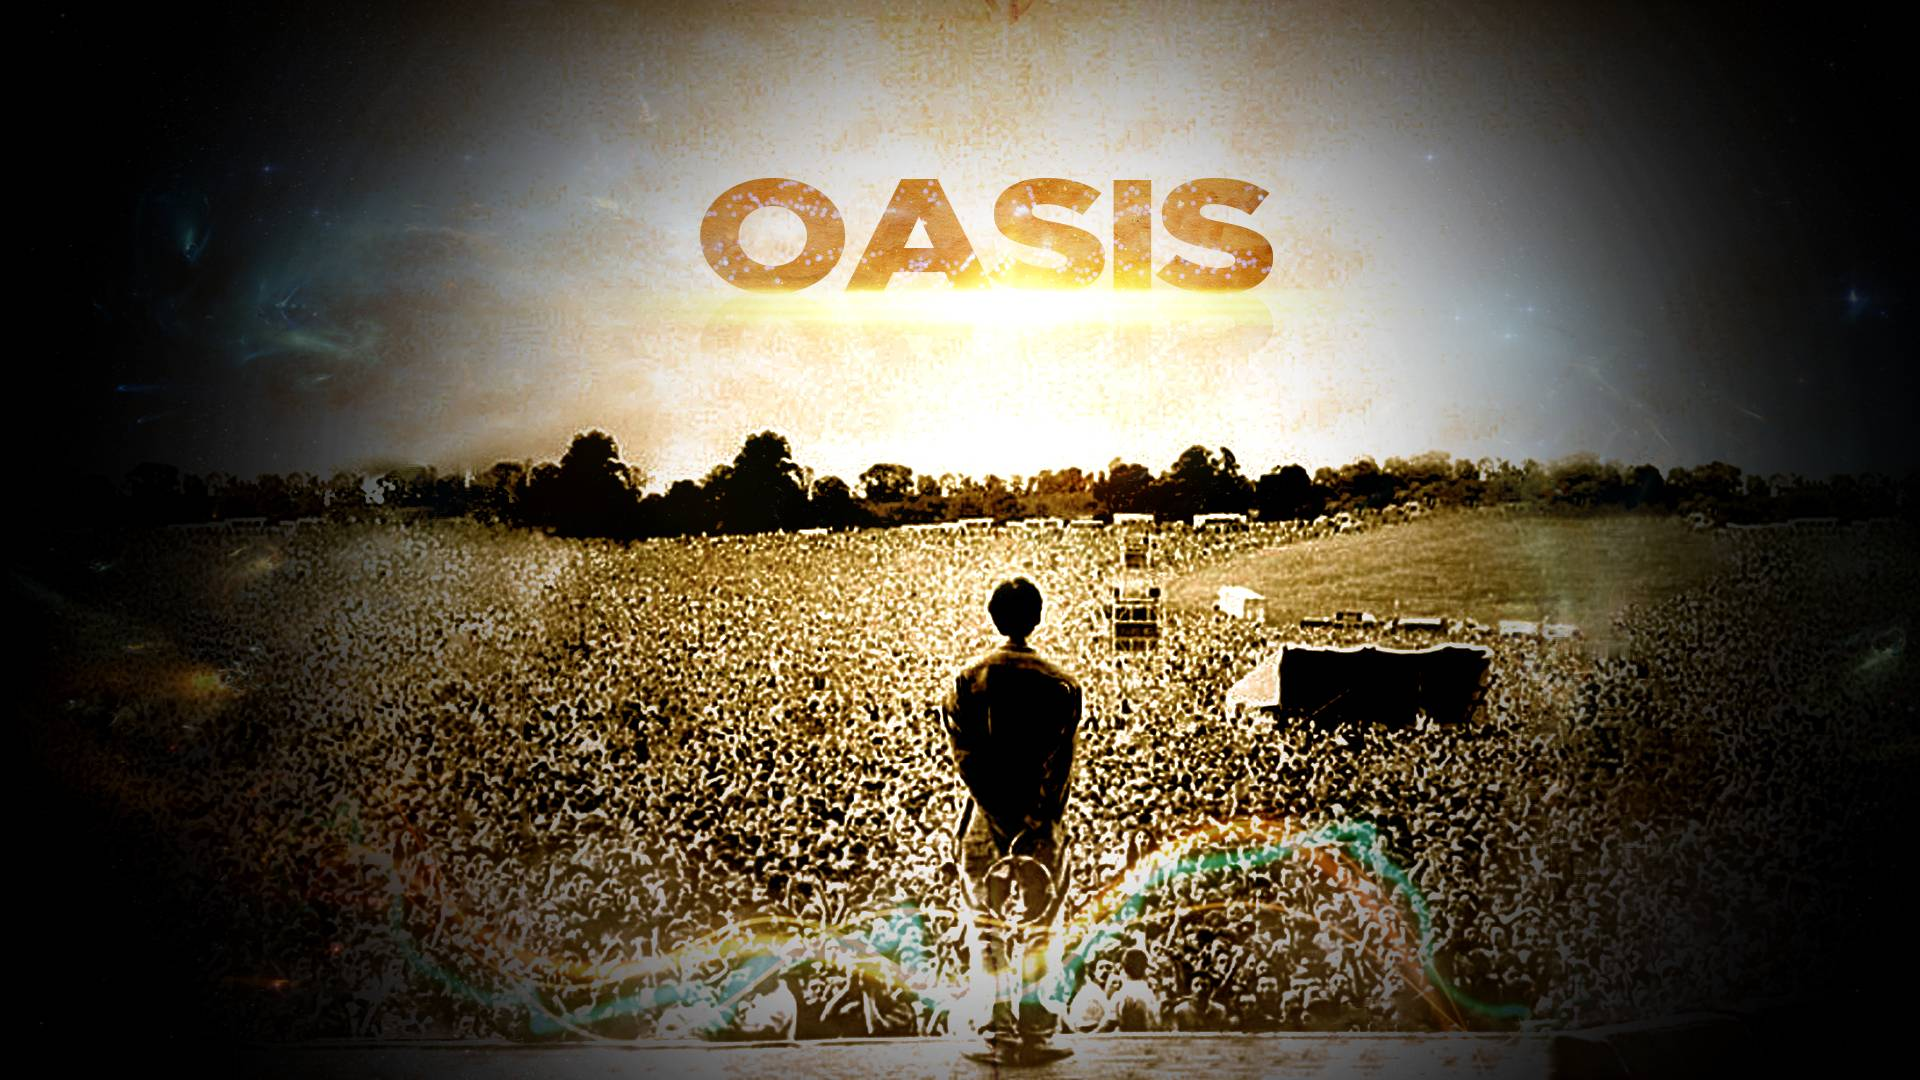 Oasis Wallpaper by InVation on DeviantArt Daniel Radcliffe